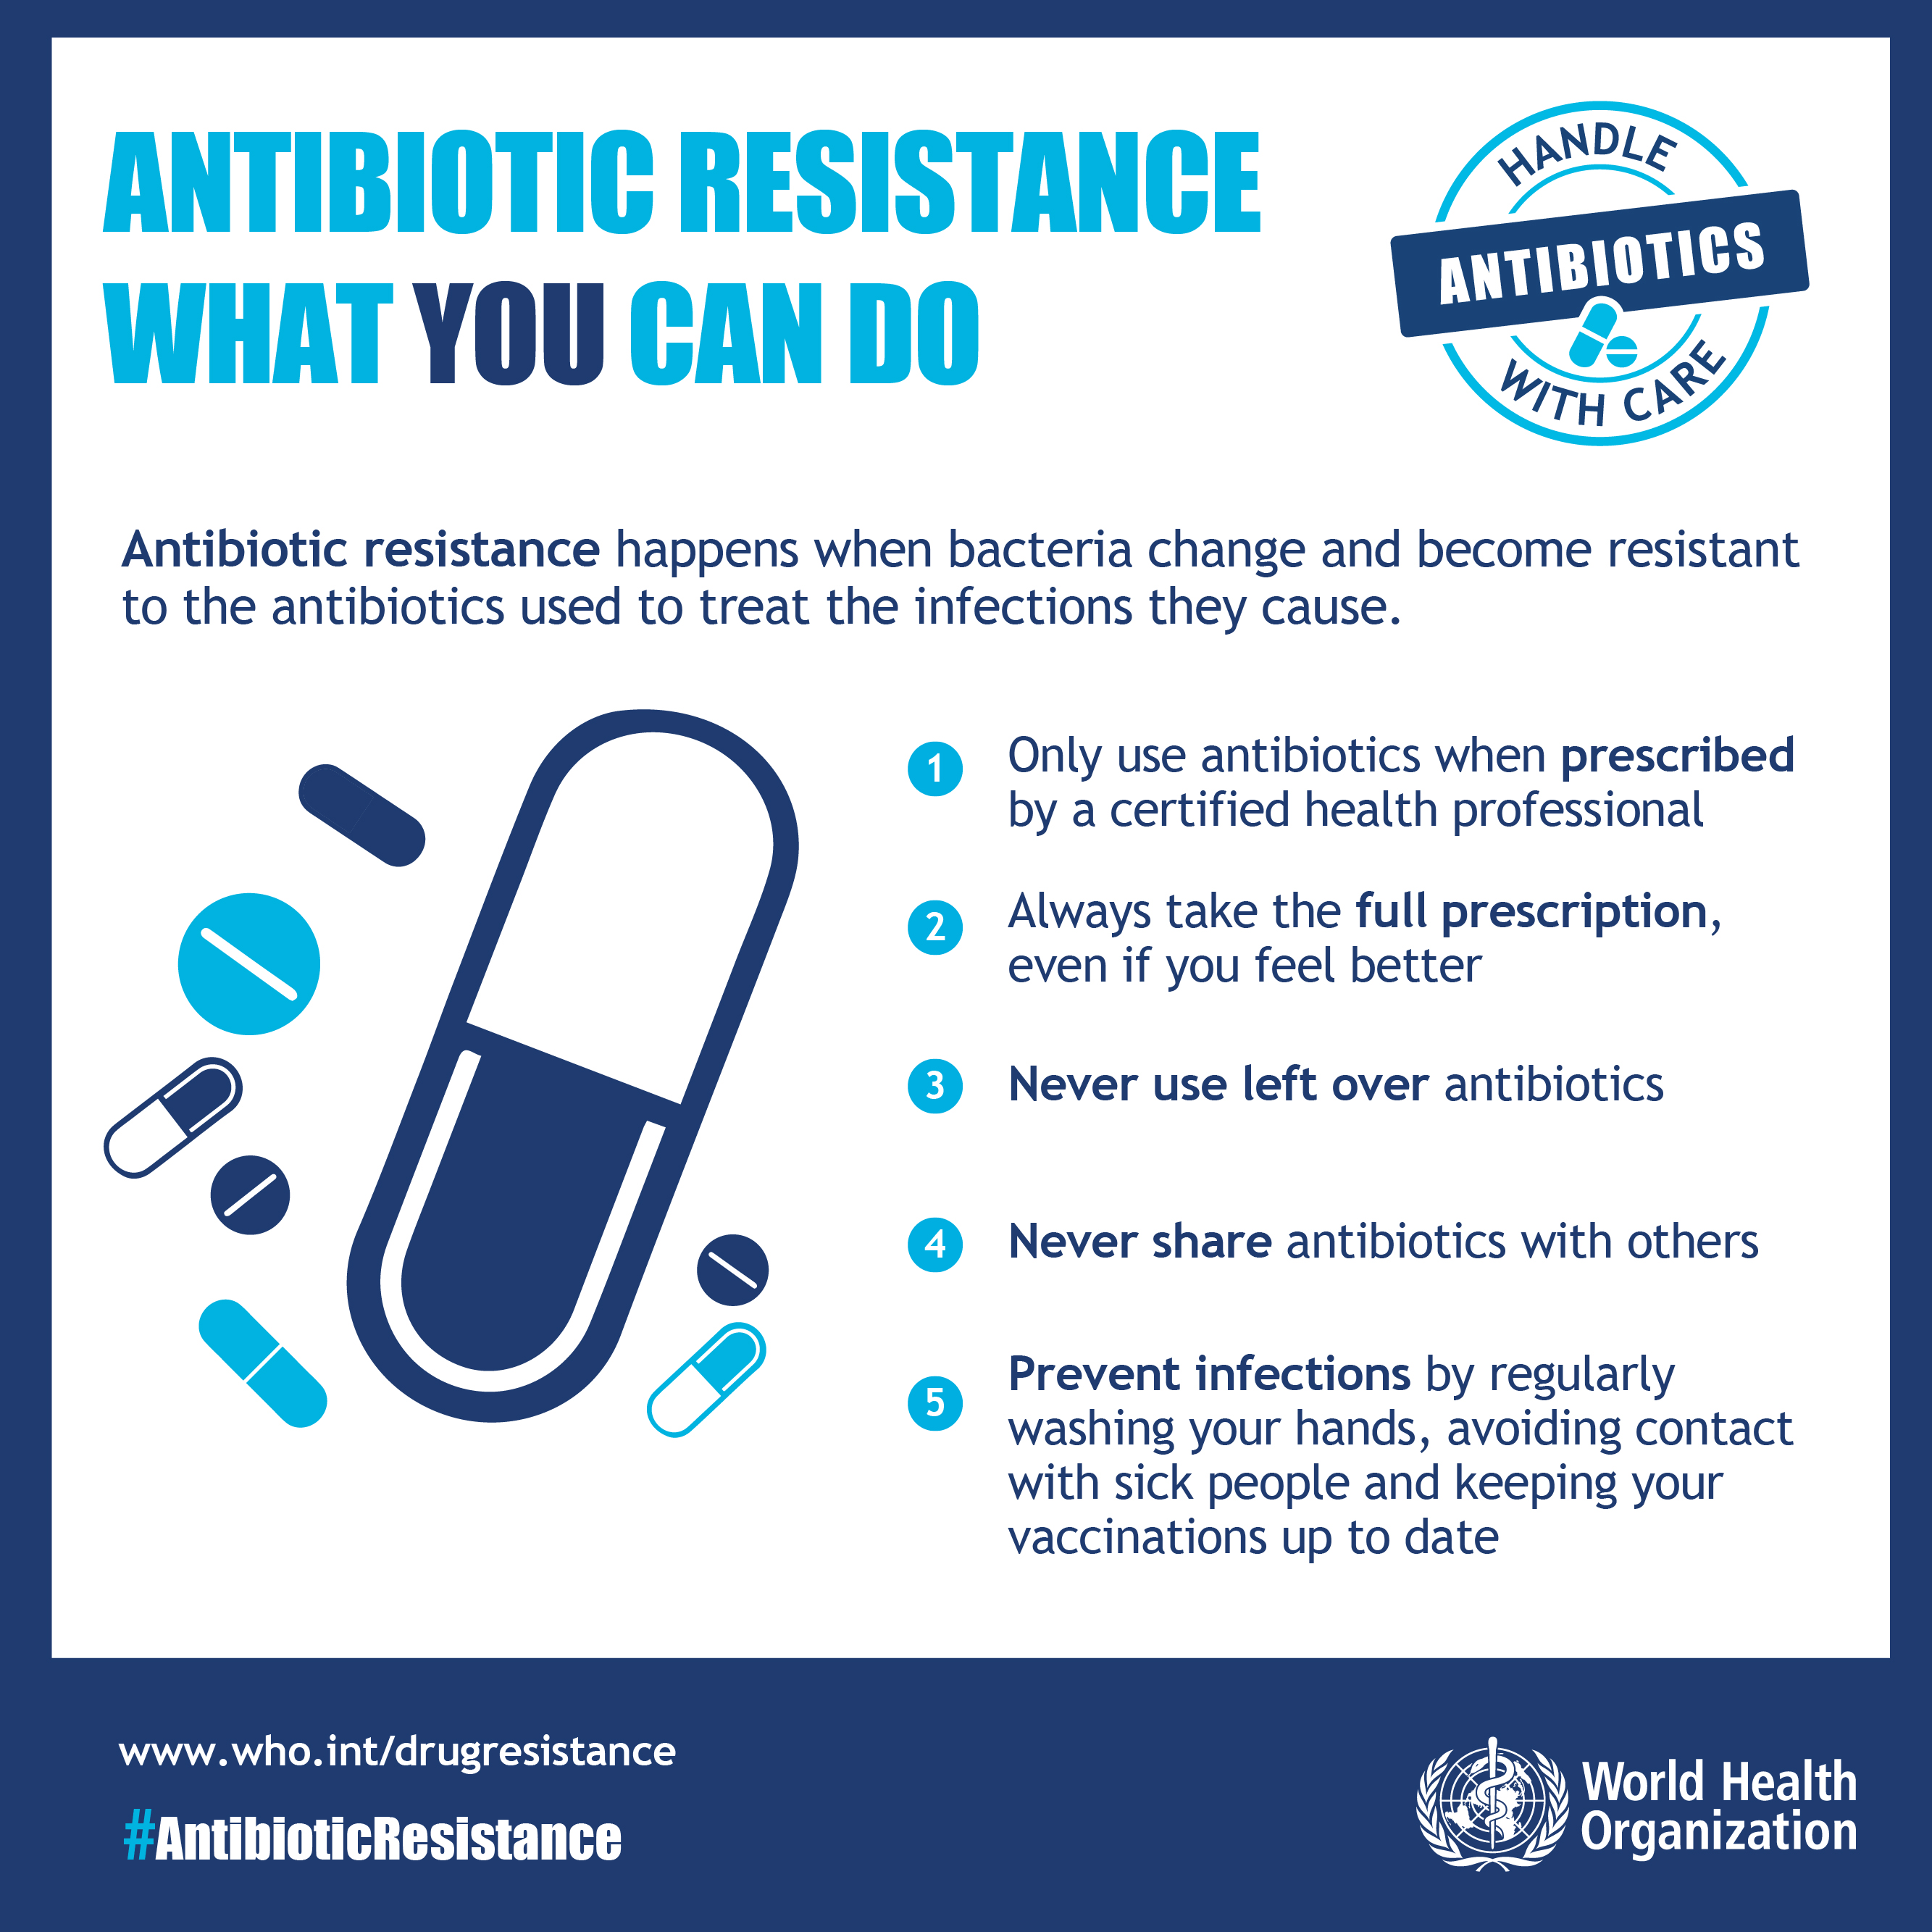 insights into issues antimicrobial resistance insights the crude infectious disease mortality rate in today is 416 75 per 100 000 persons twice the rate in the u s 200 when antibiotics were introduced